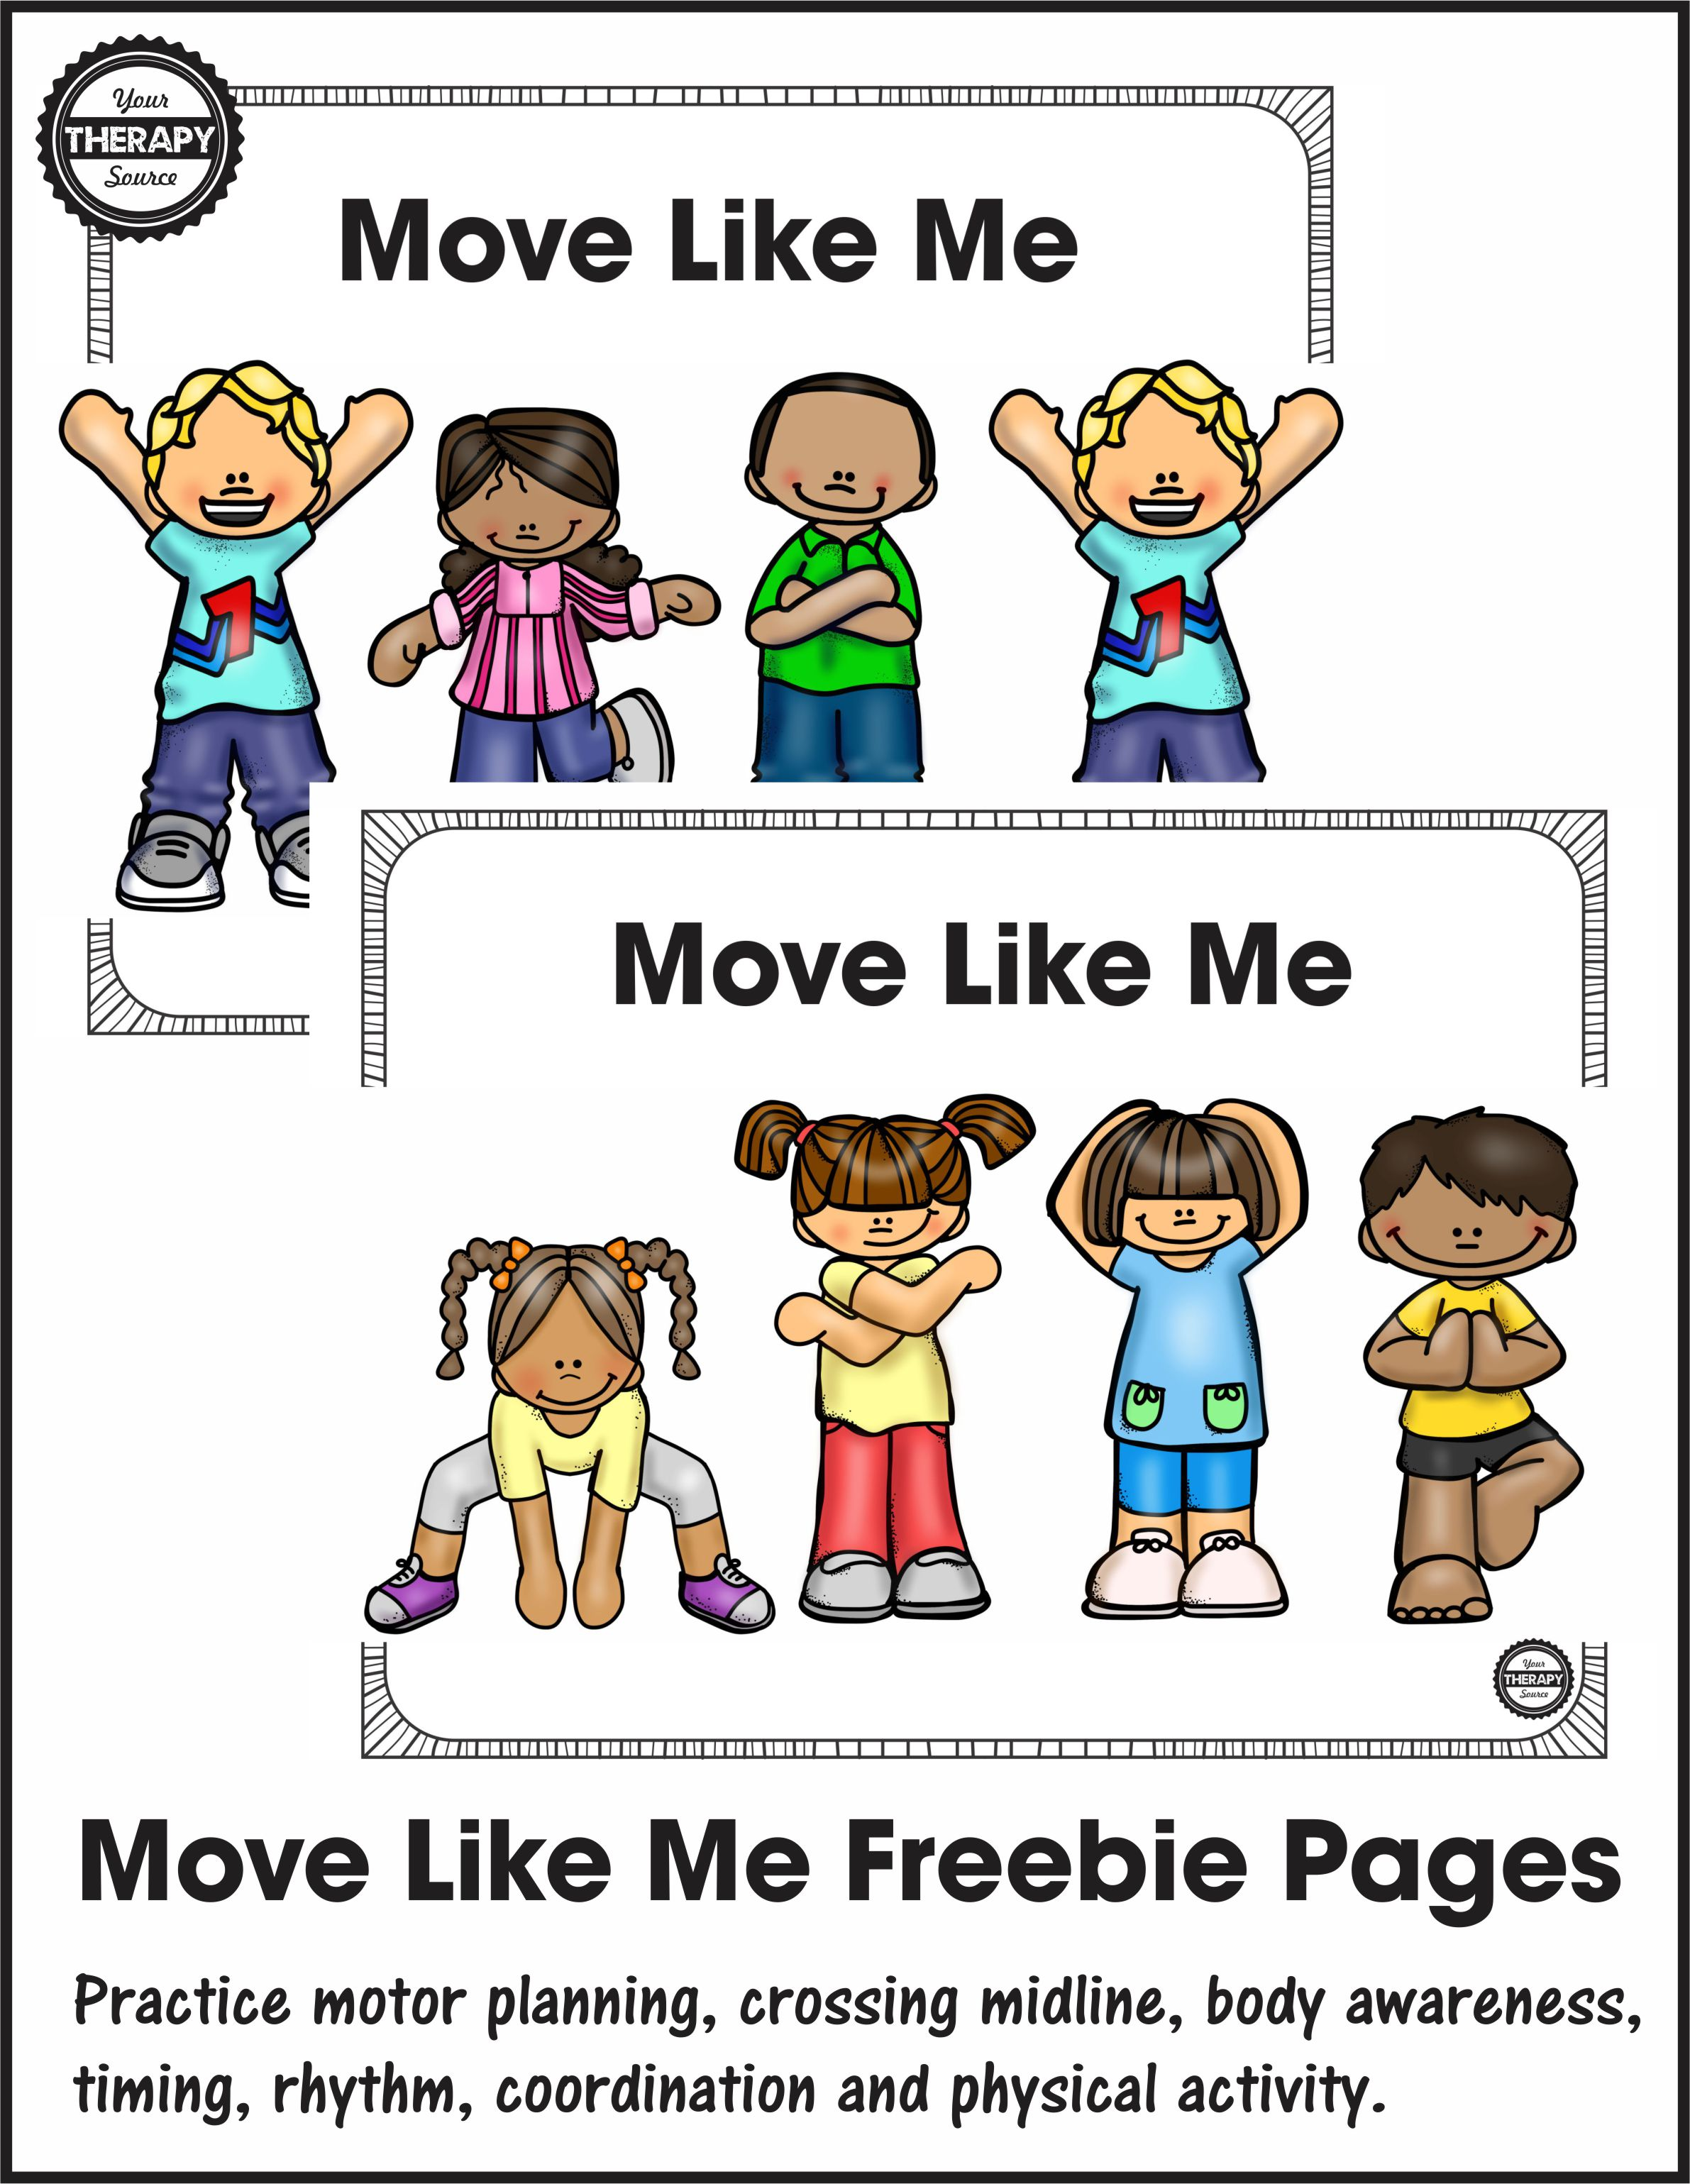 Move Like Me Freebie